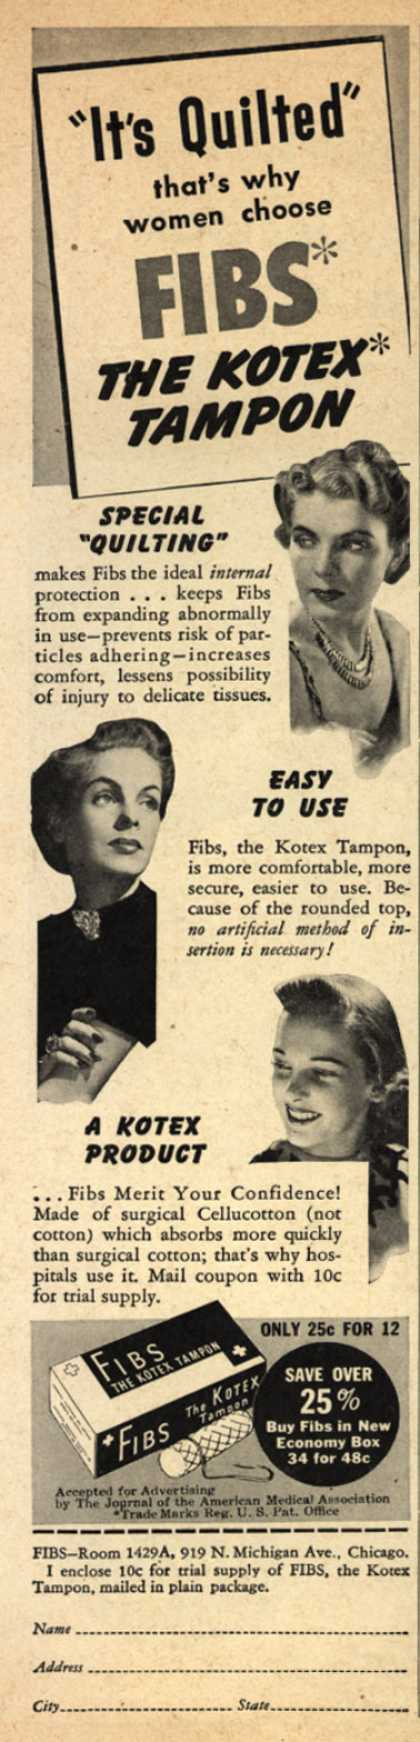 "Kotex Company's FIBS, The Kotex Tampon – ""It's Quilted"" that's why women choose FIBS, The Kotex Tampon (1940)"